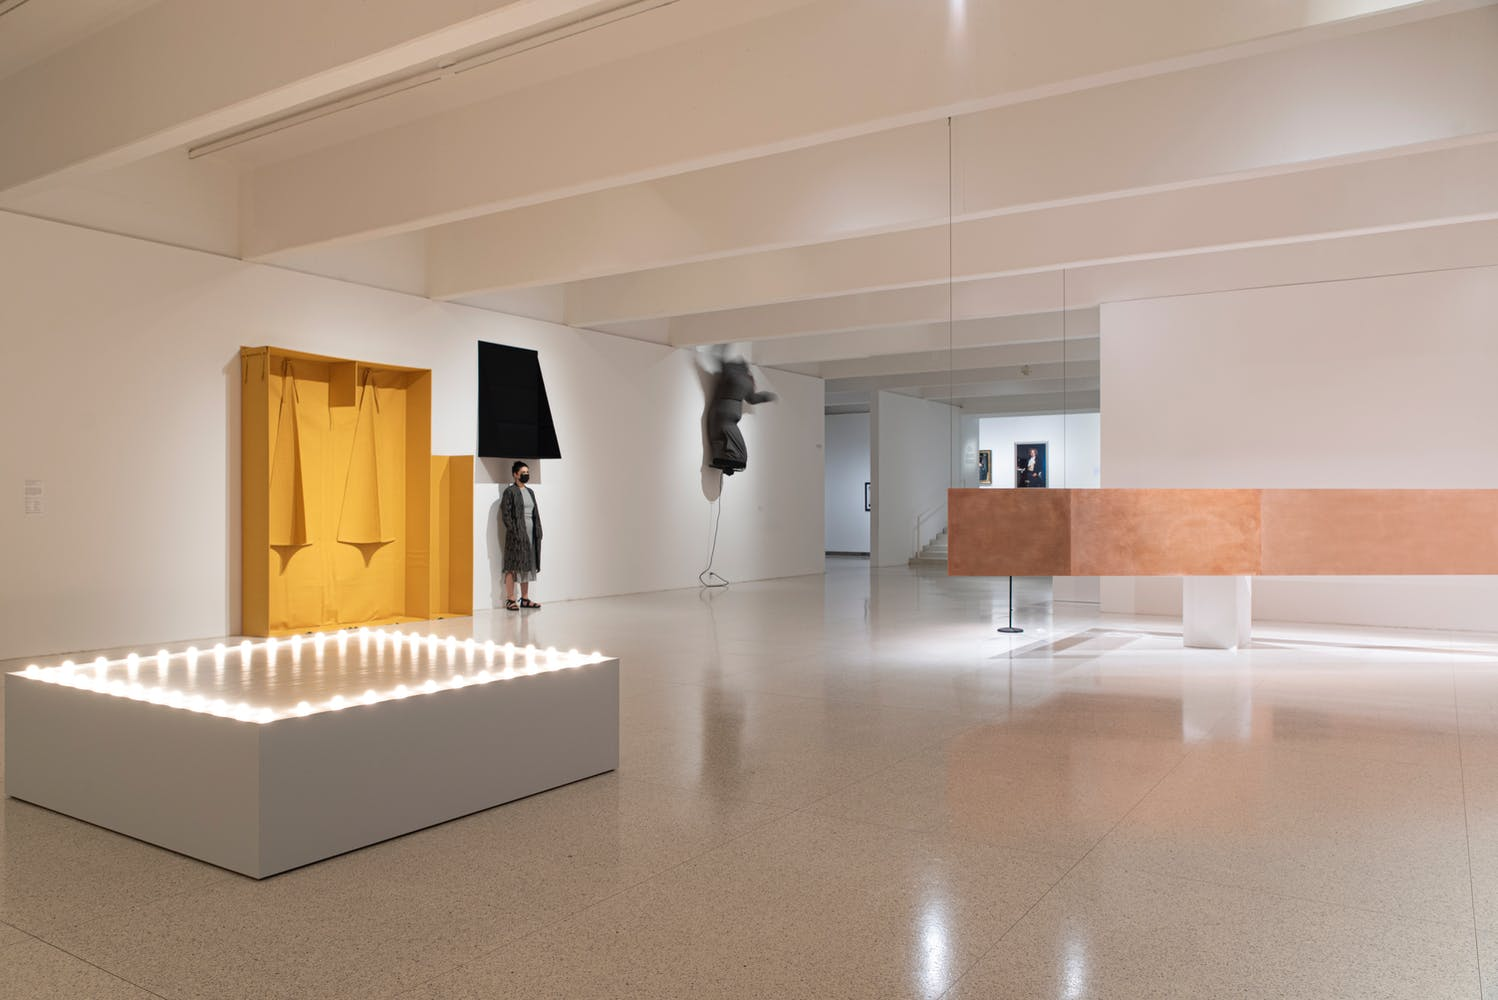 Gallery view with multiple sculptural objects